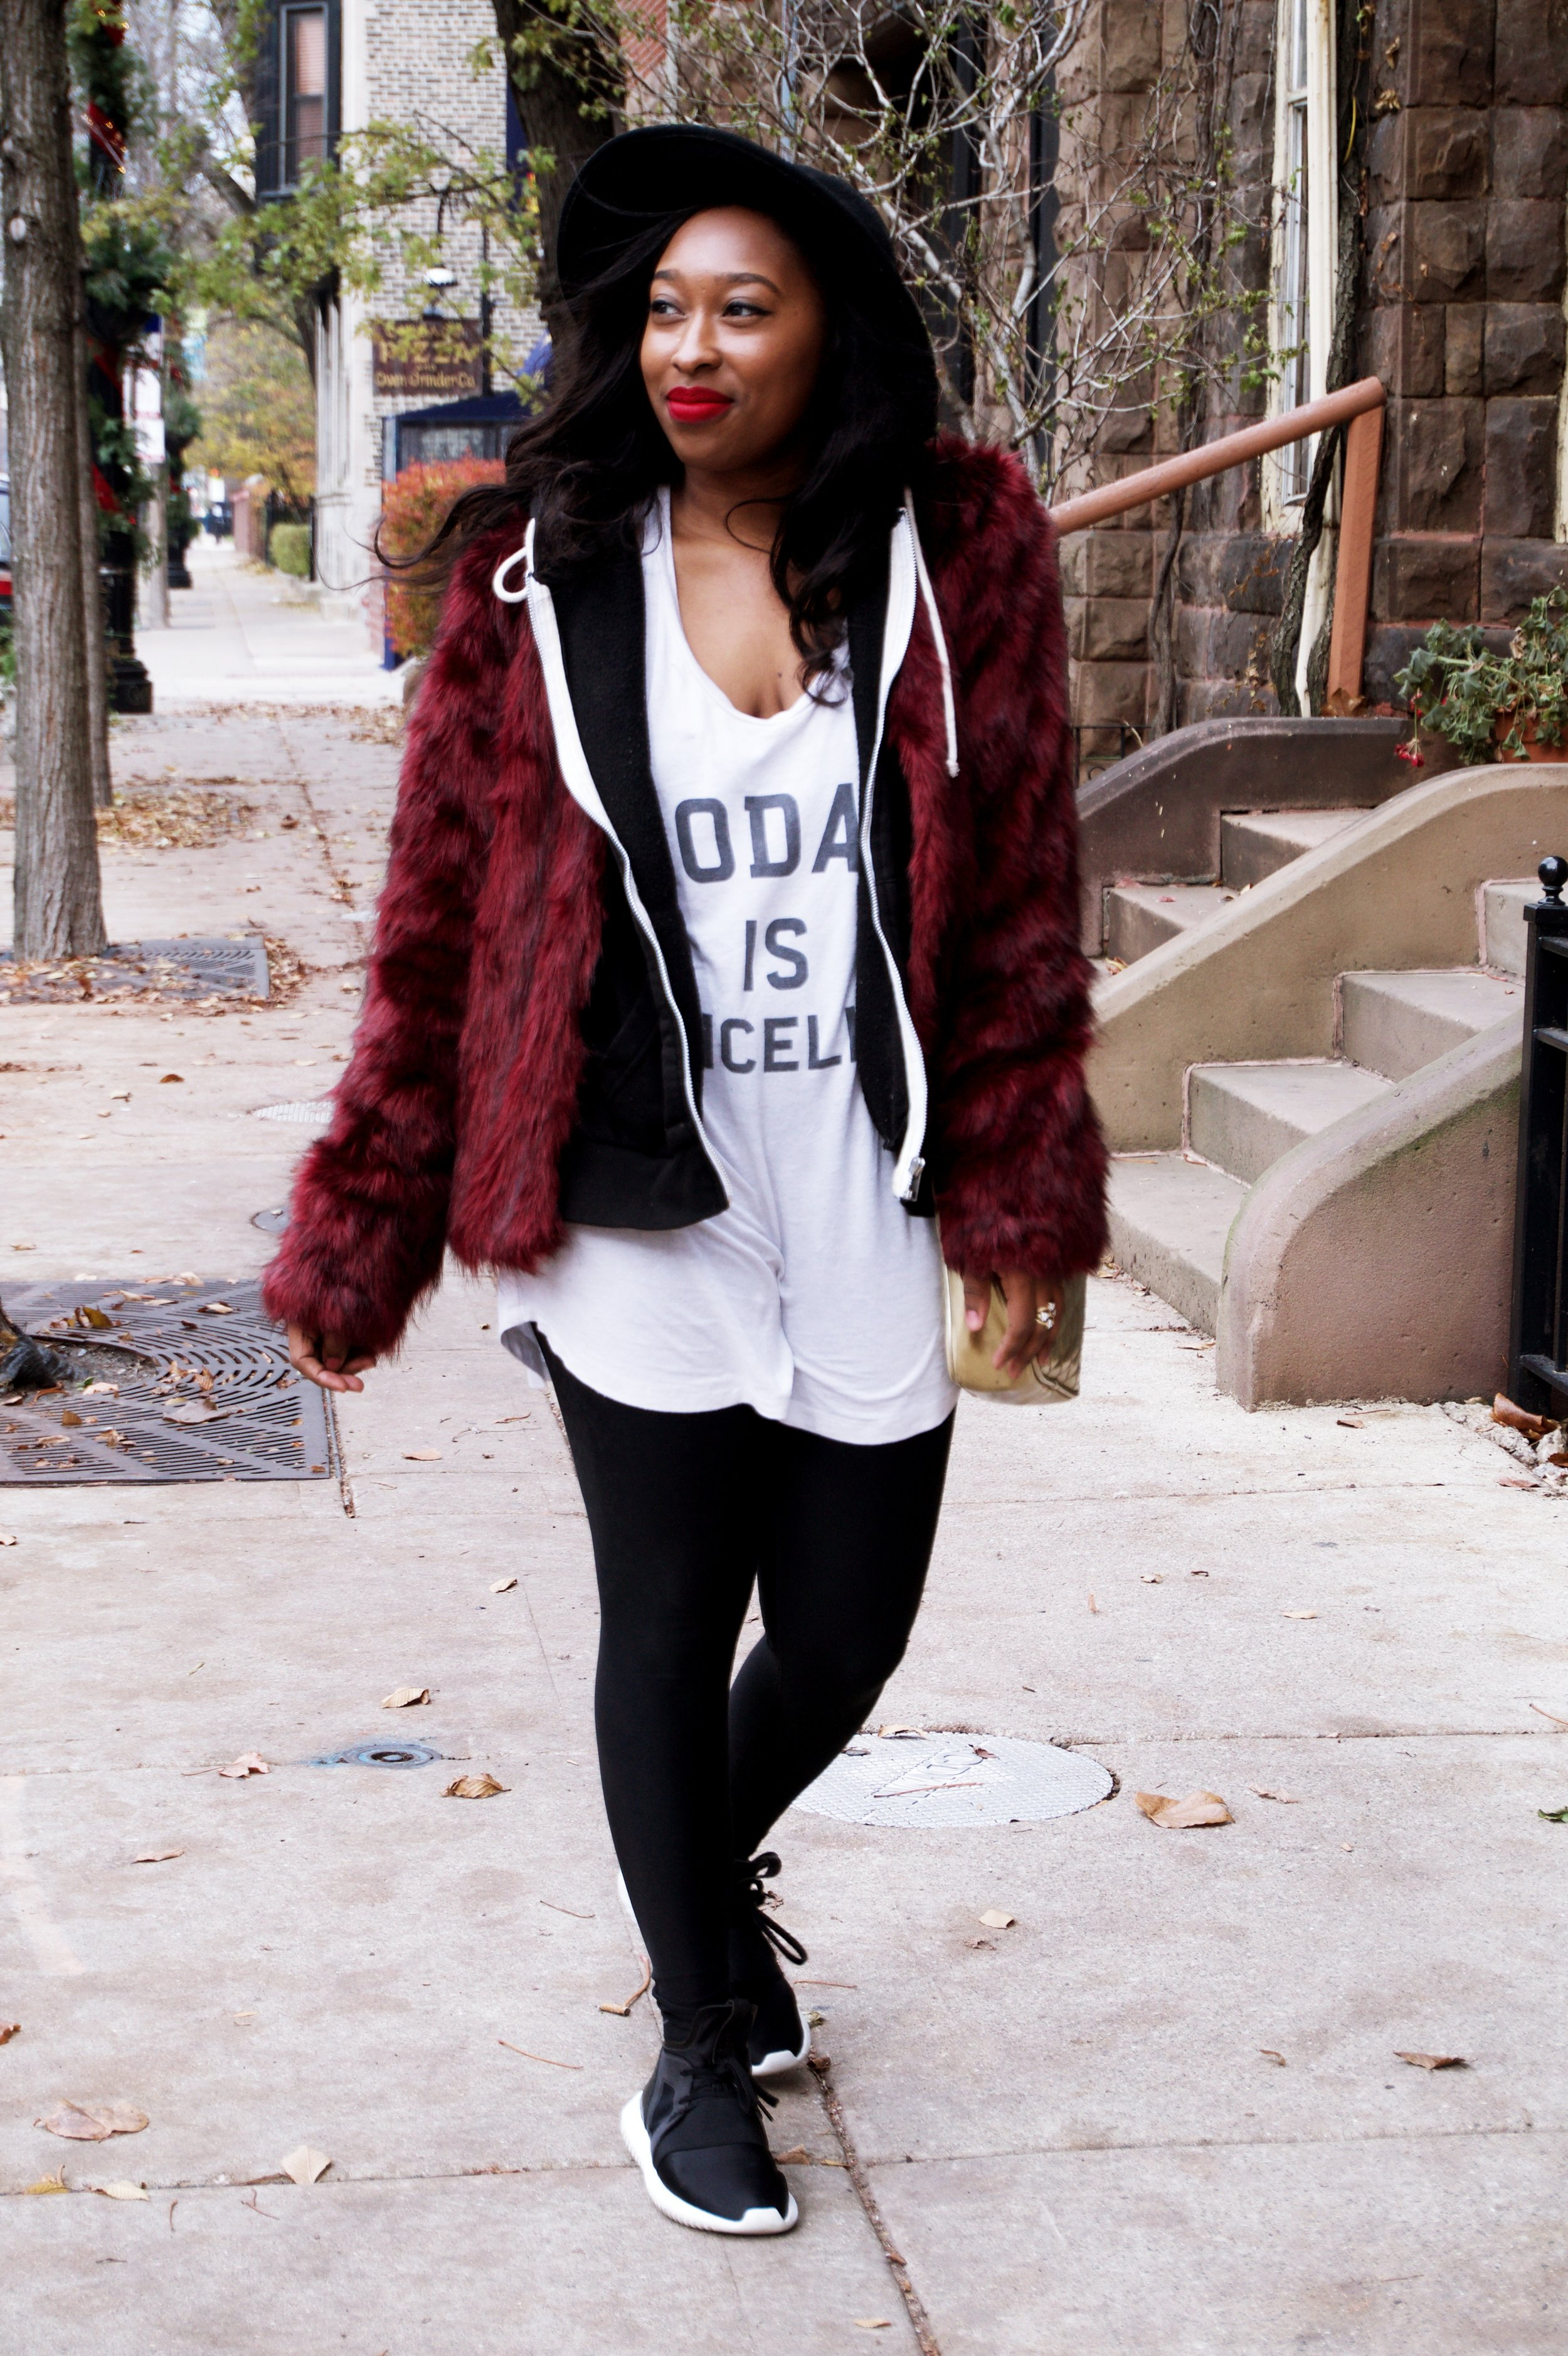 Casual way to style a fur jacket